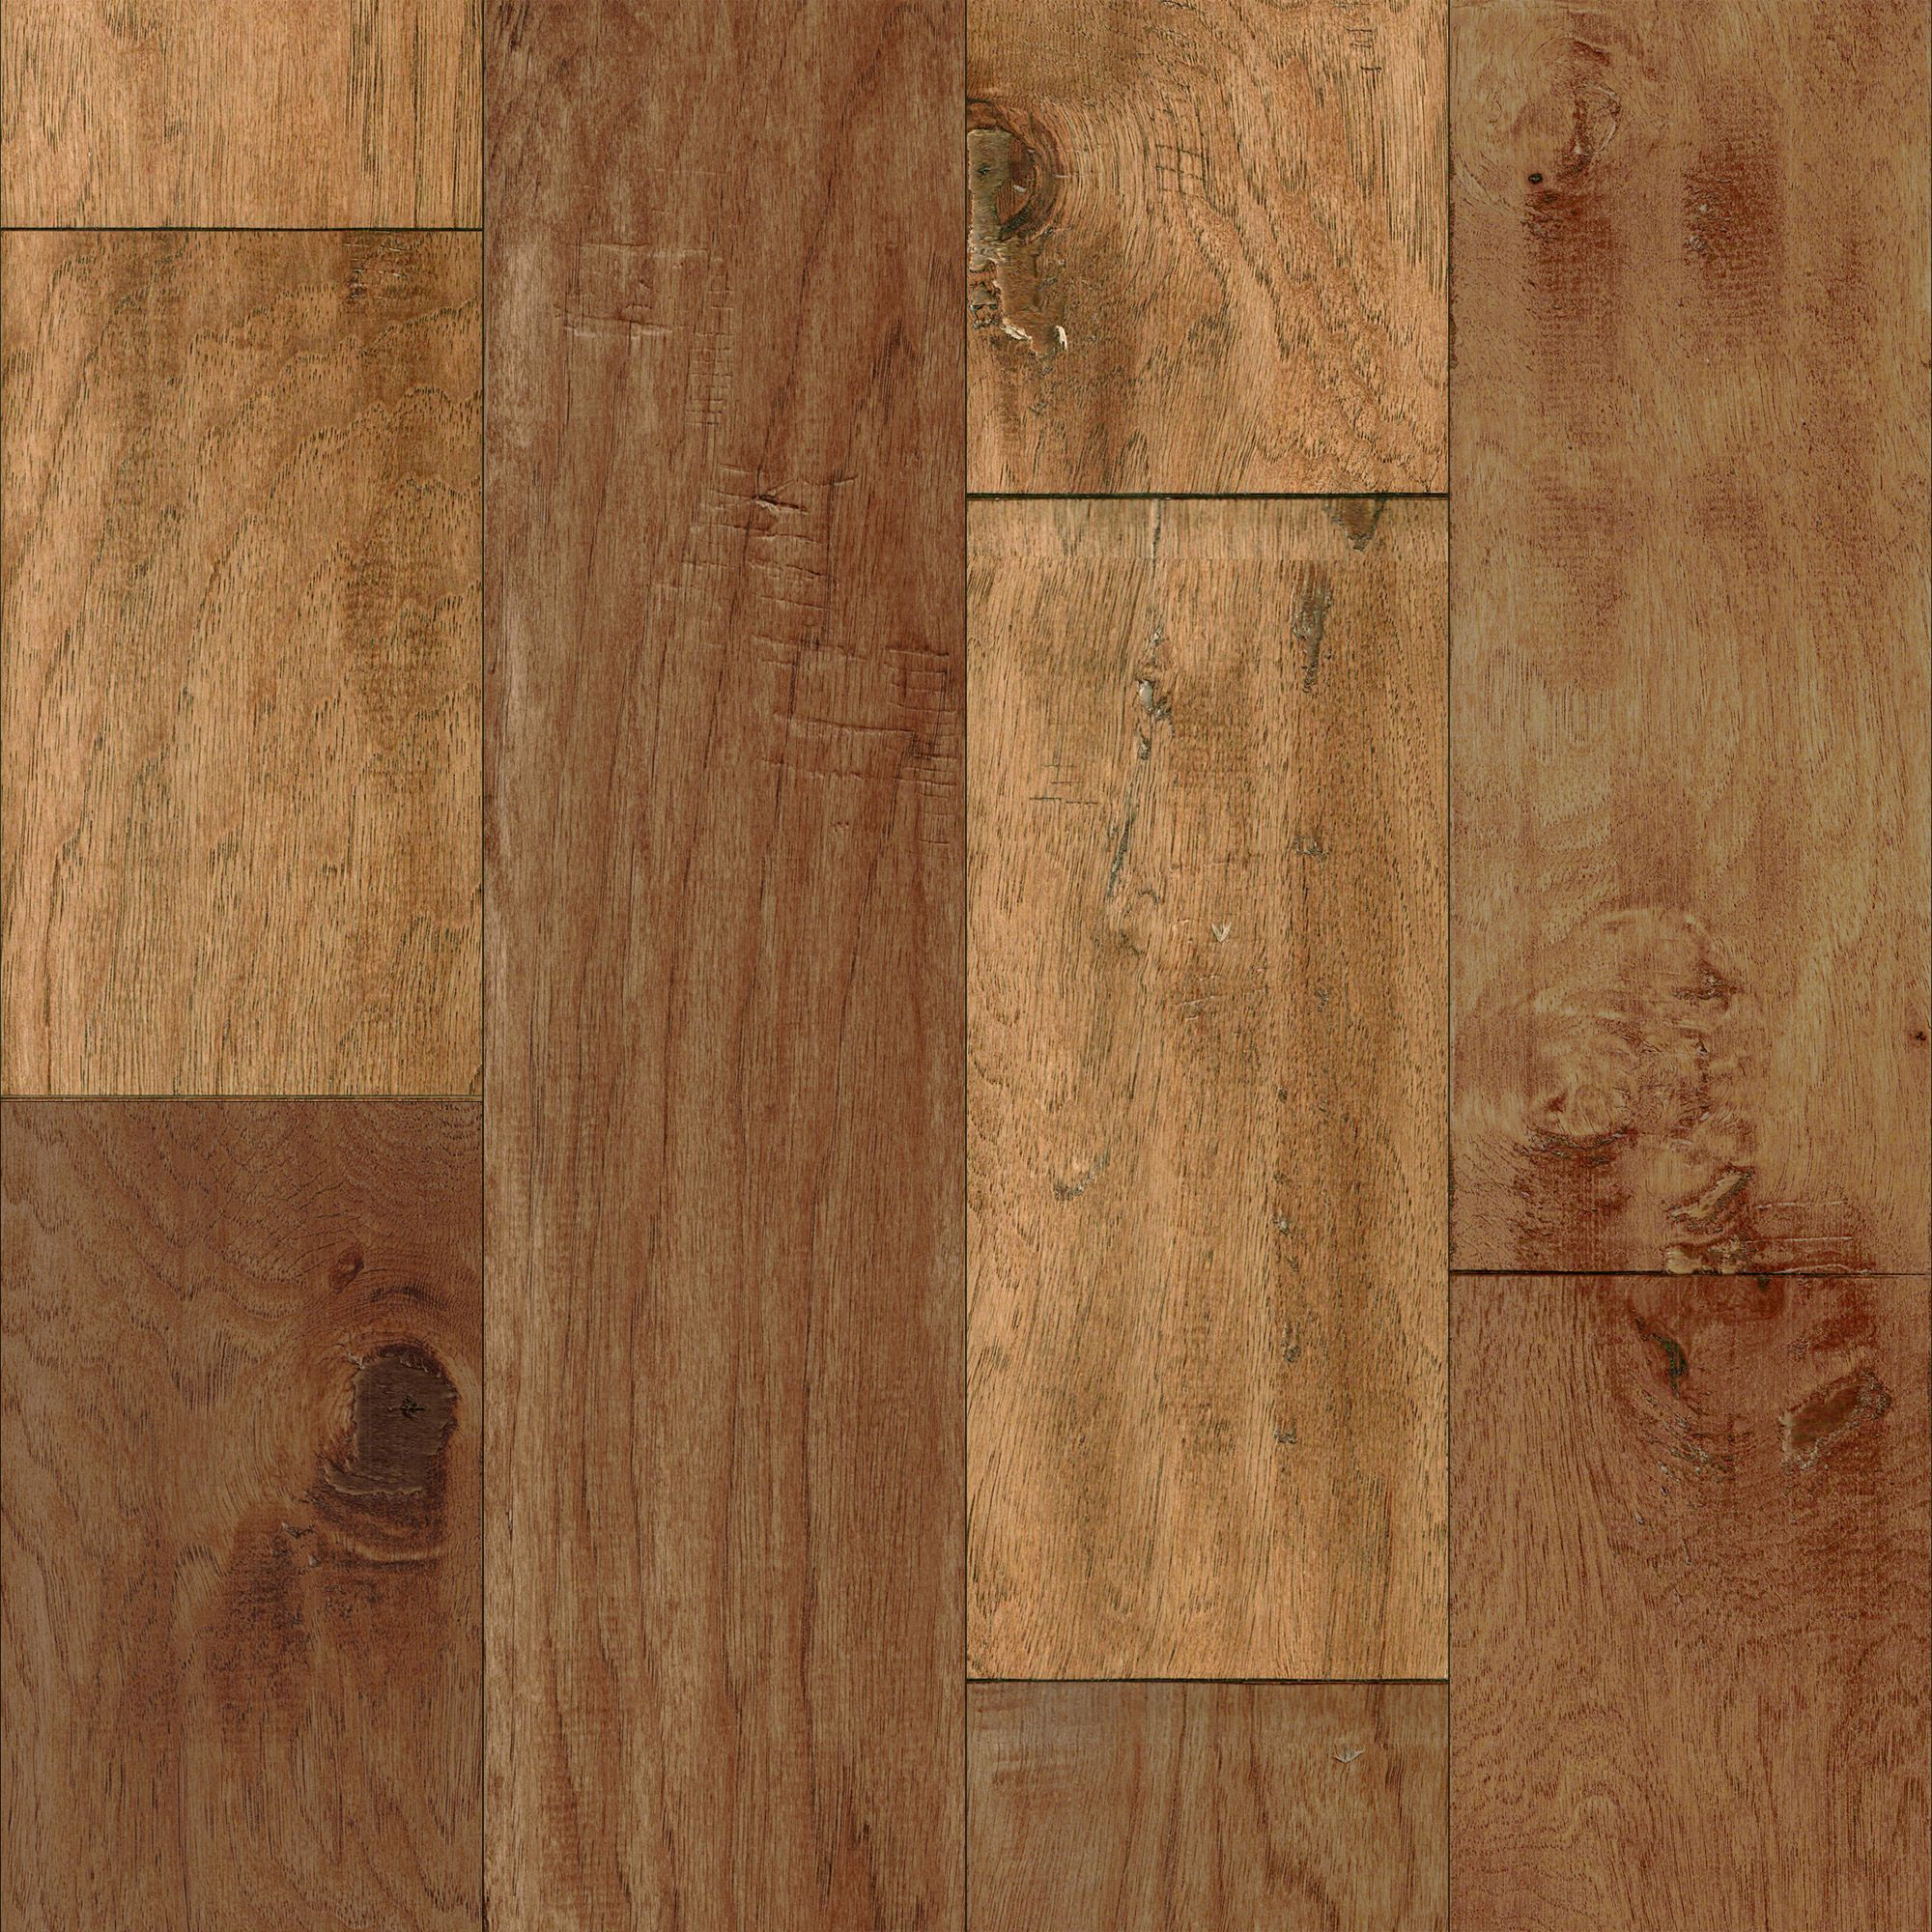 Mohawk Hickory Heritage 5 1 4 Click Together Engineered Hardwood Flooring Hardwood Flooring Mk34560 13 Hardwood Floors Flooring Engineered Hardwood Flooring